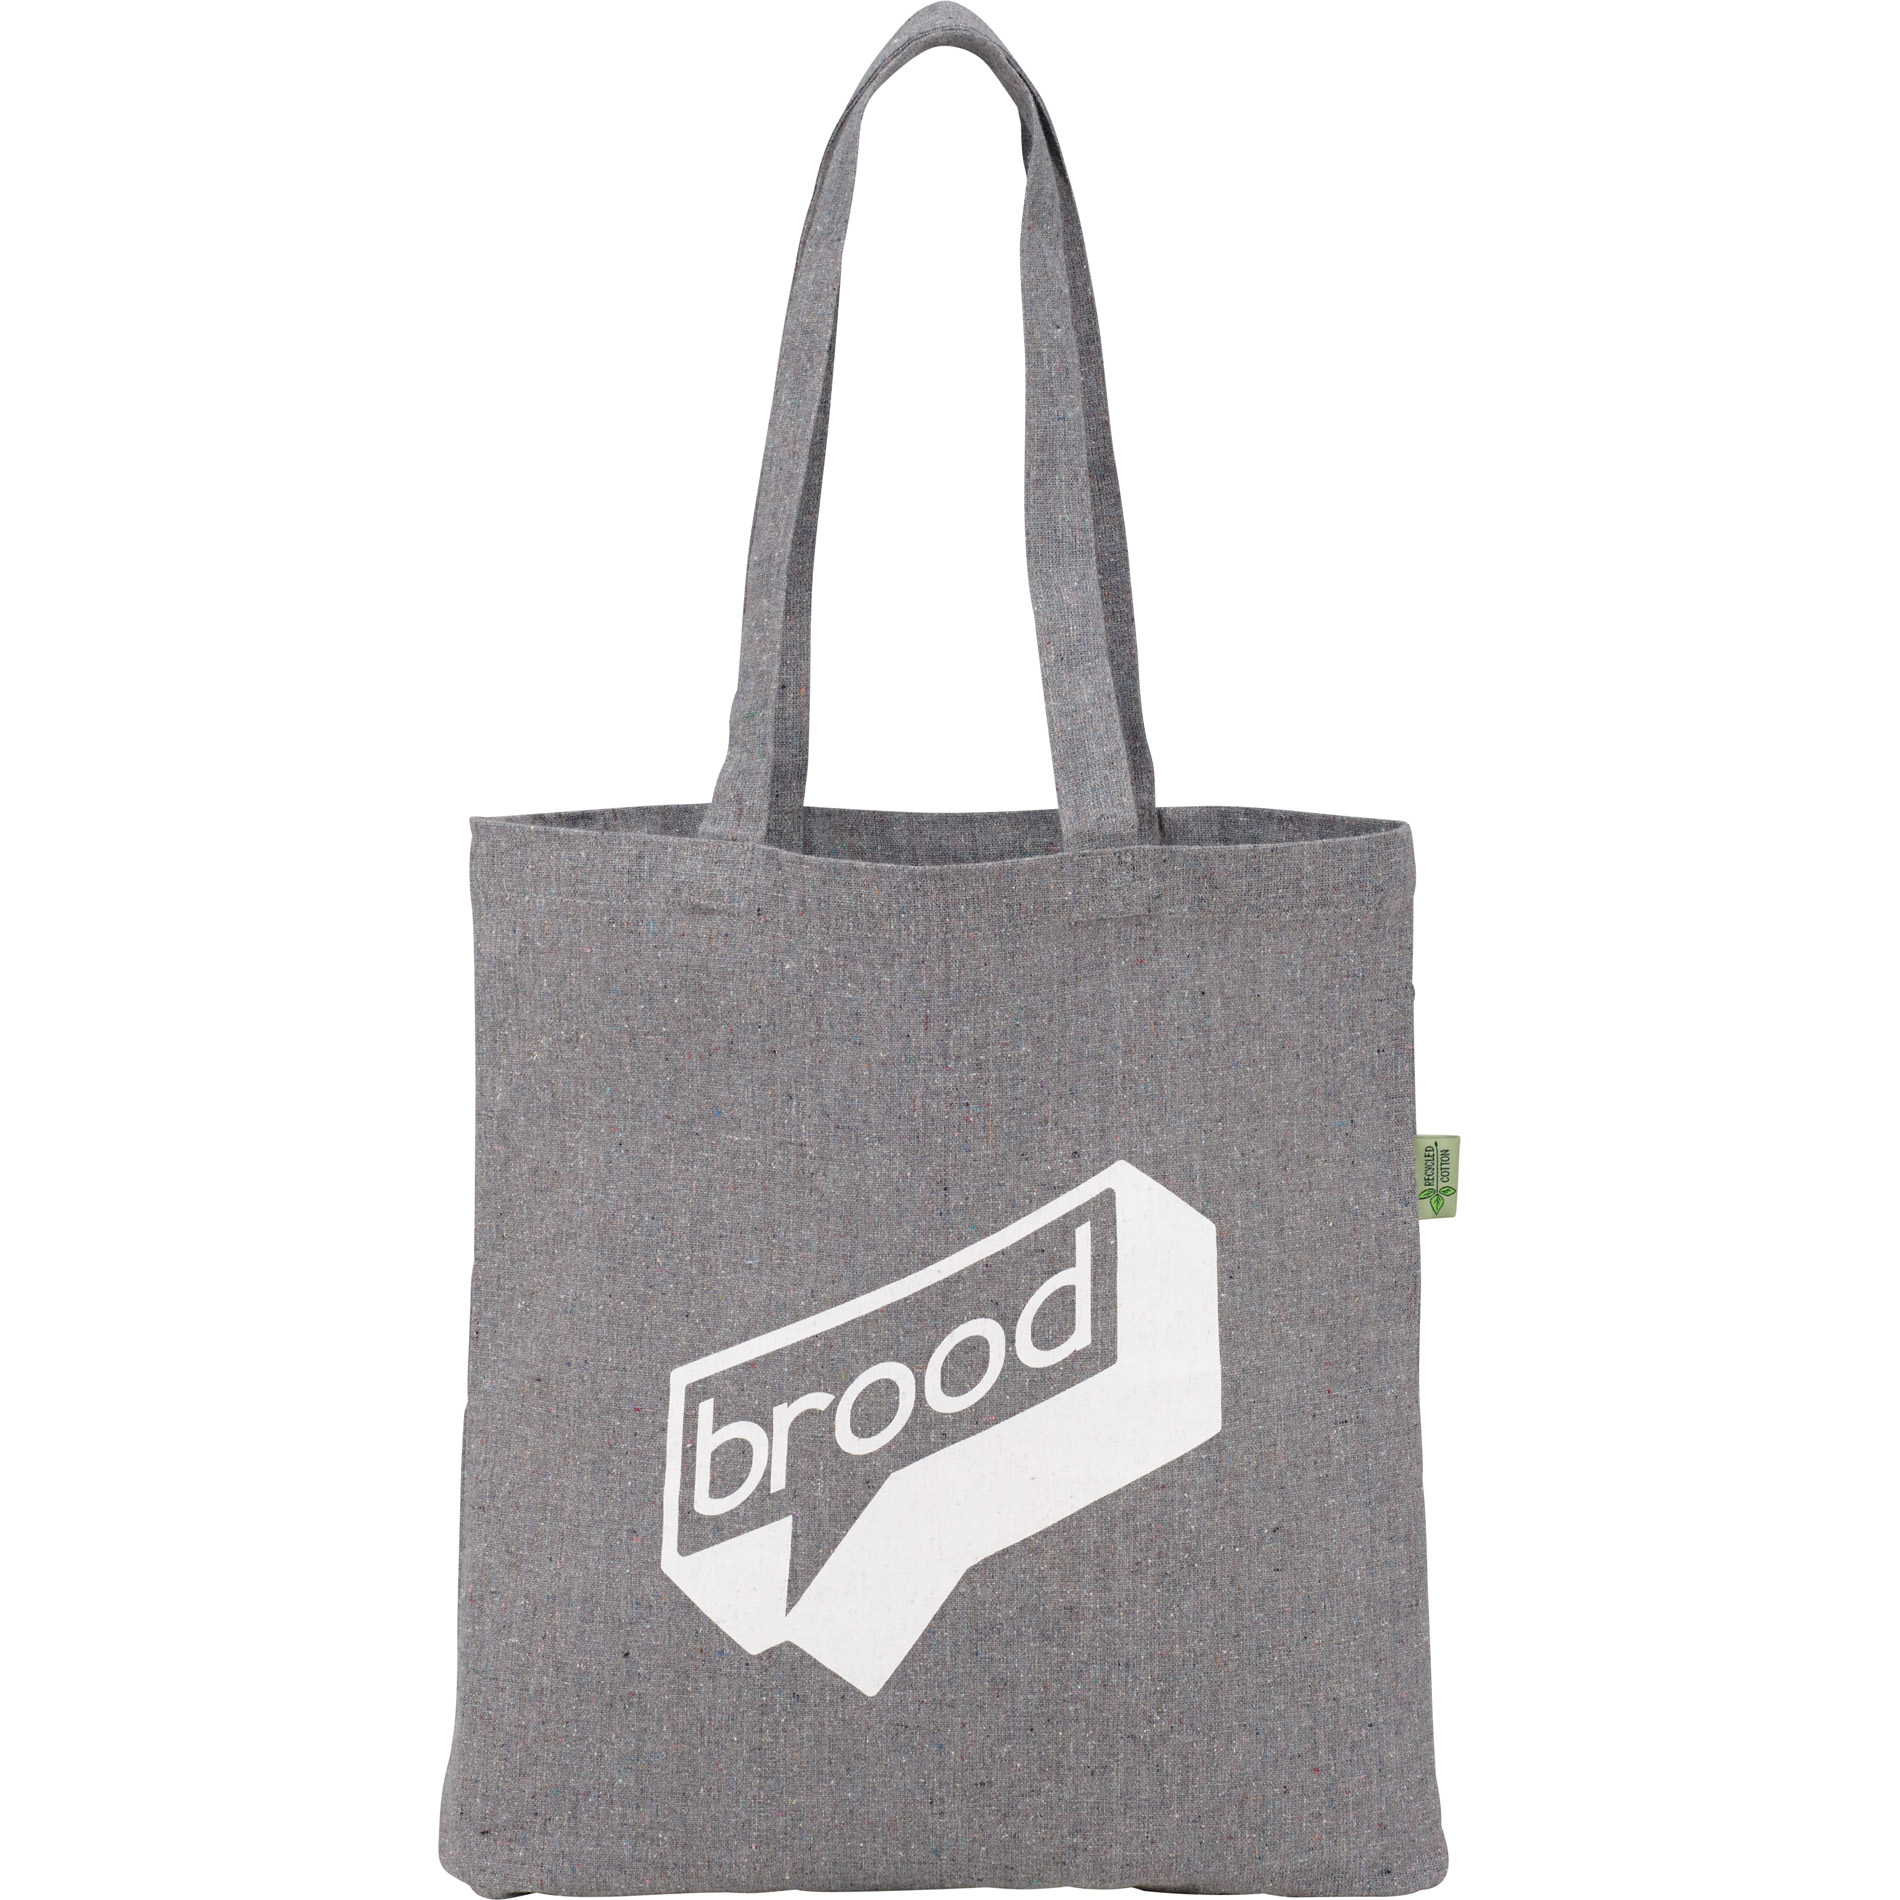 Gray multicolored recycled cotton fabric promotional tote with logo